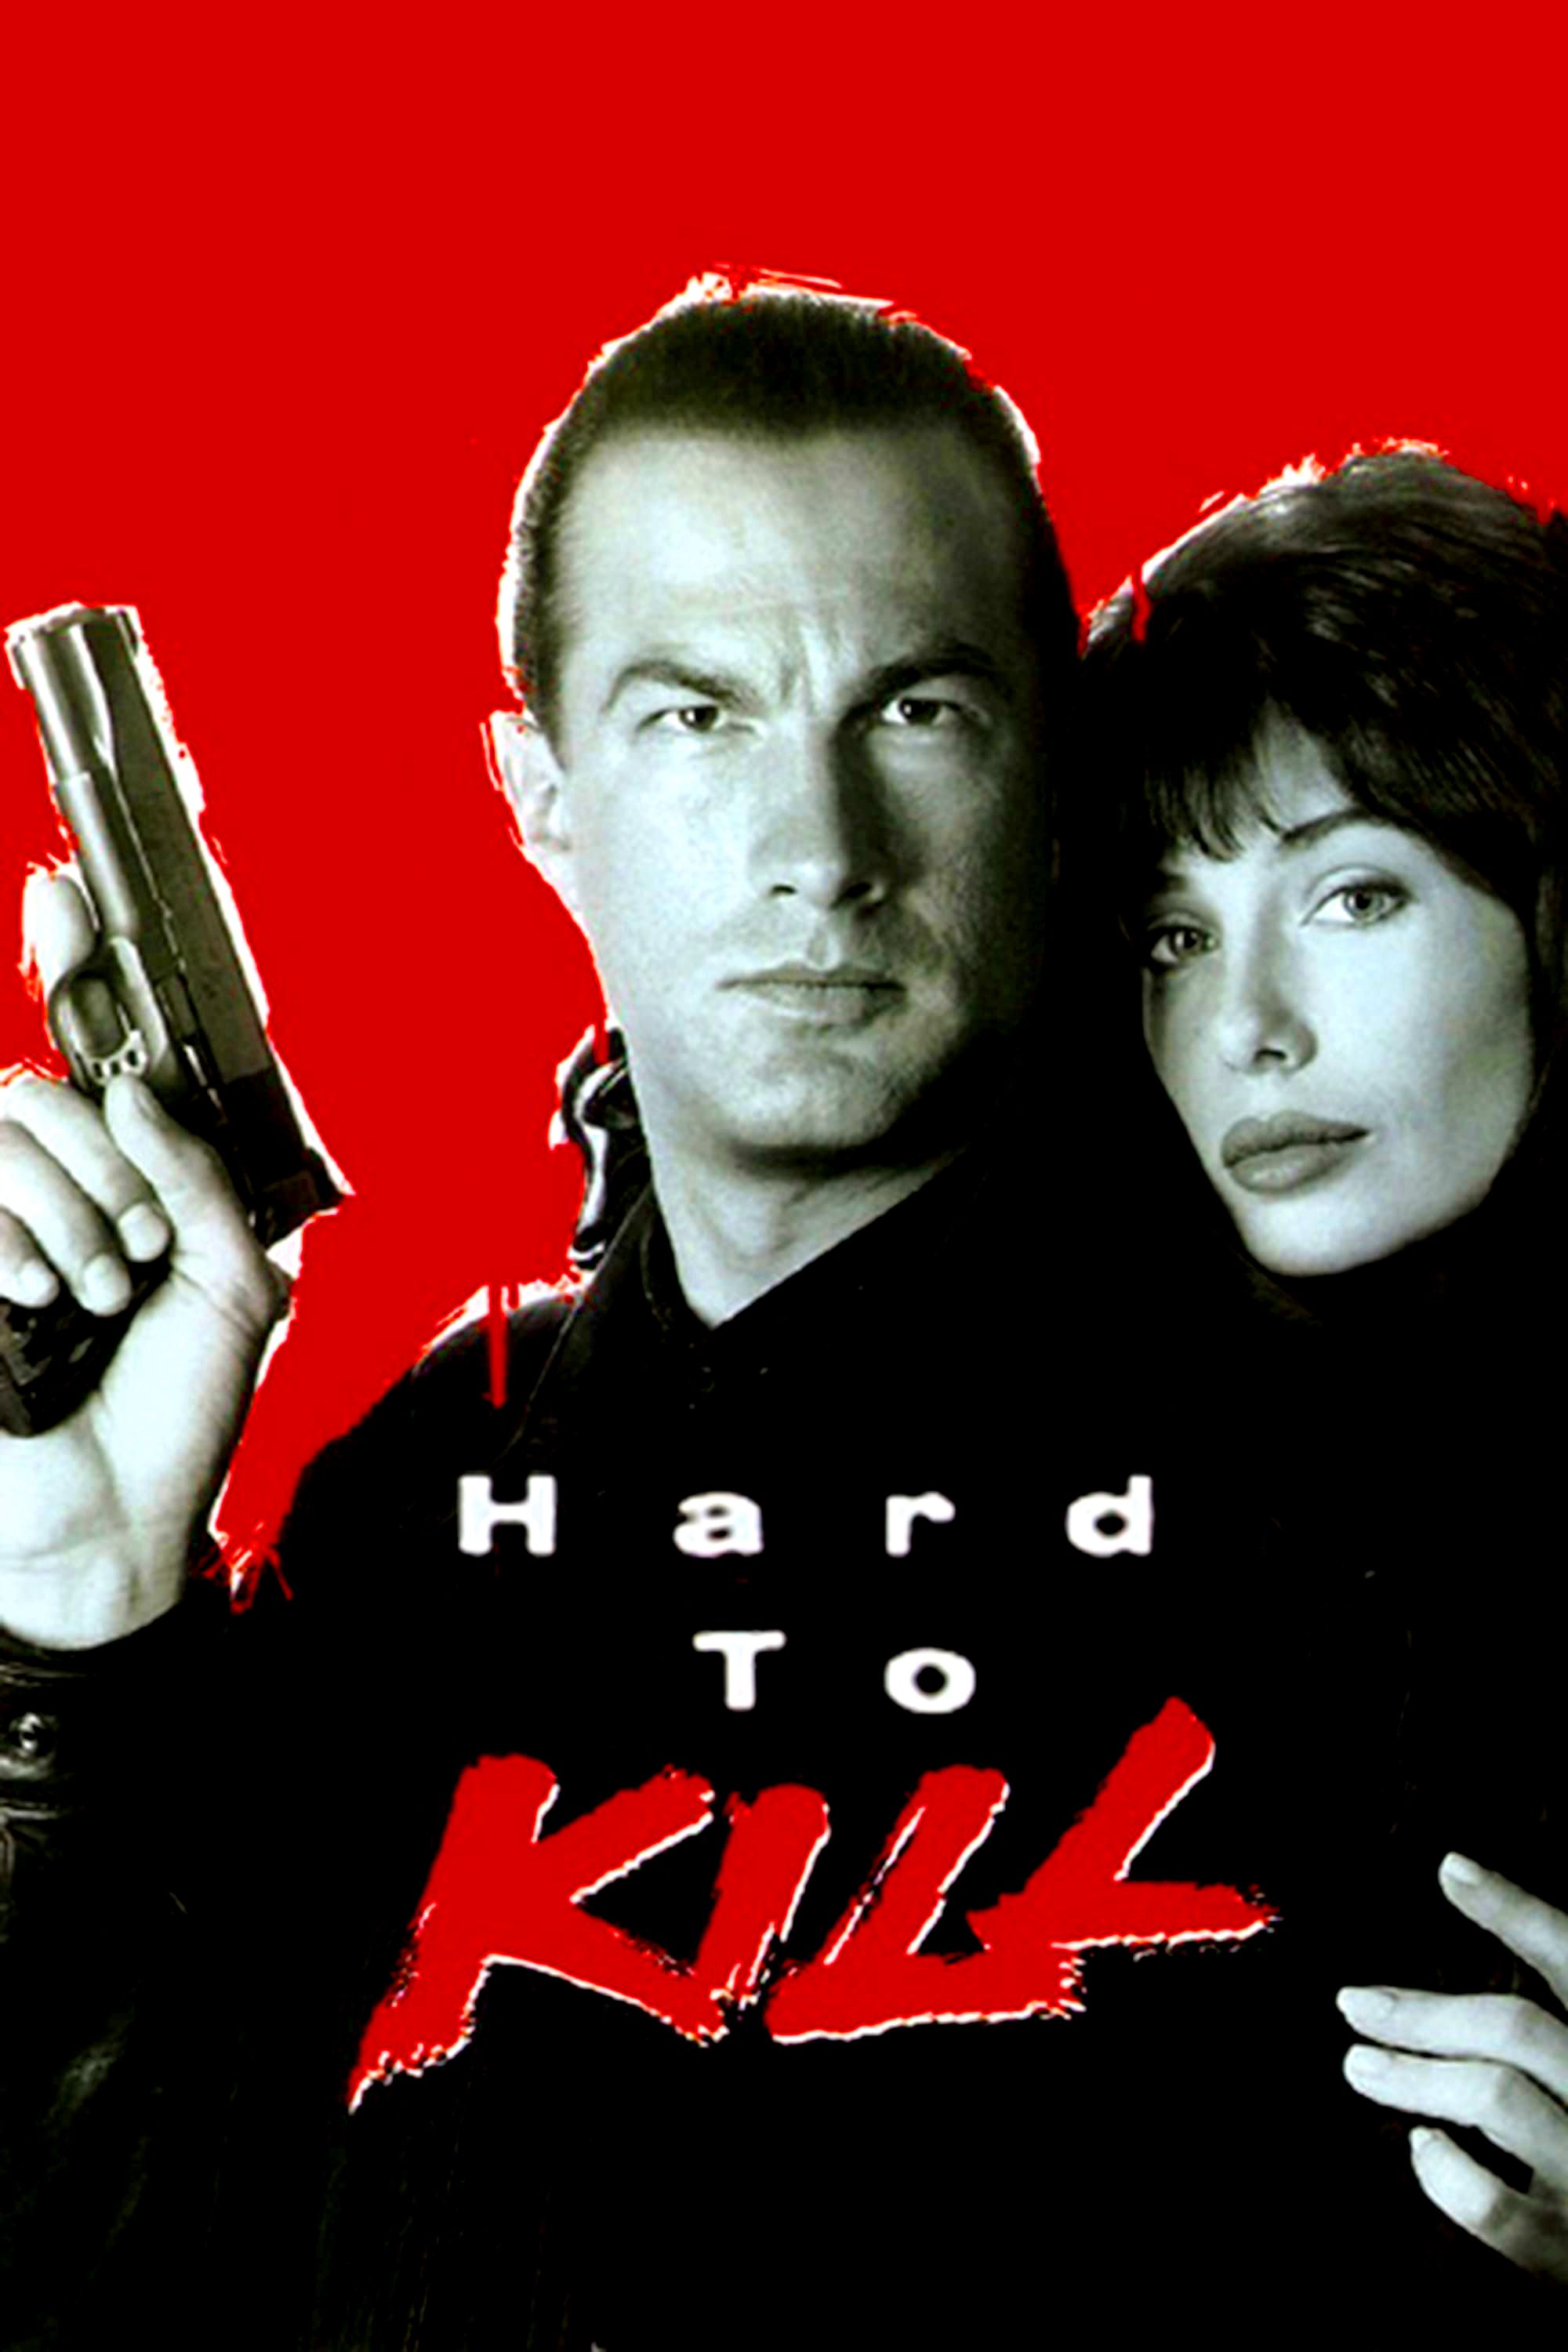 Pin By Anothertom On Steven Seagal Full Films Free Movies Online Steven Seagal